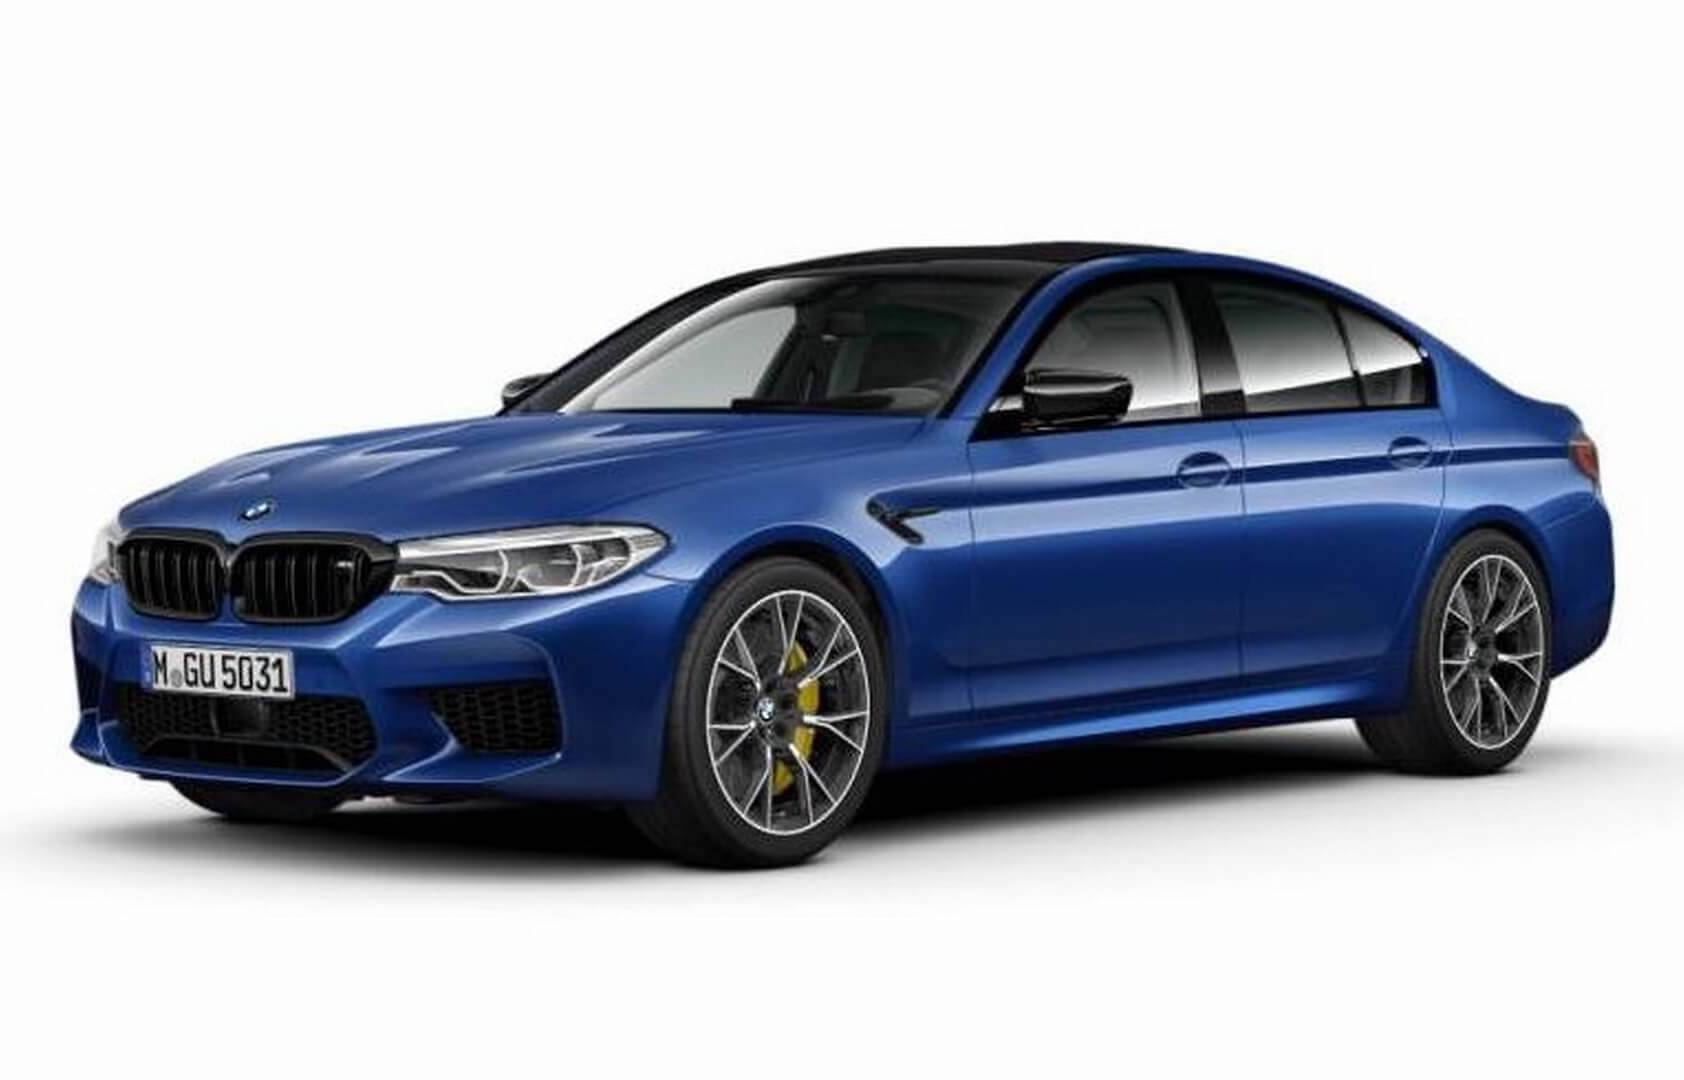 LEAKED: BMW M5 Competition Pack Adds More Power To The Super Sedan